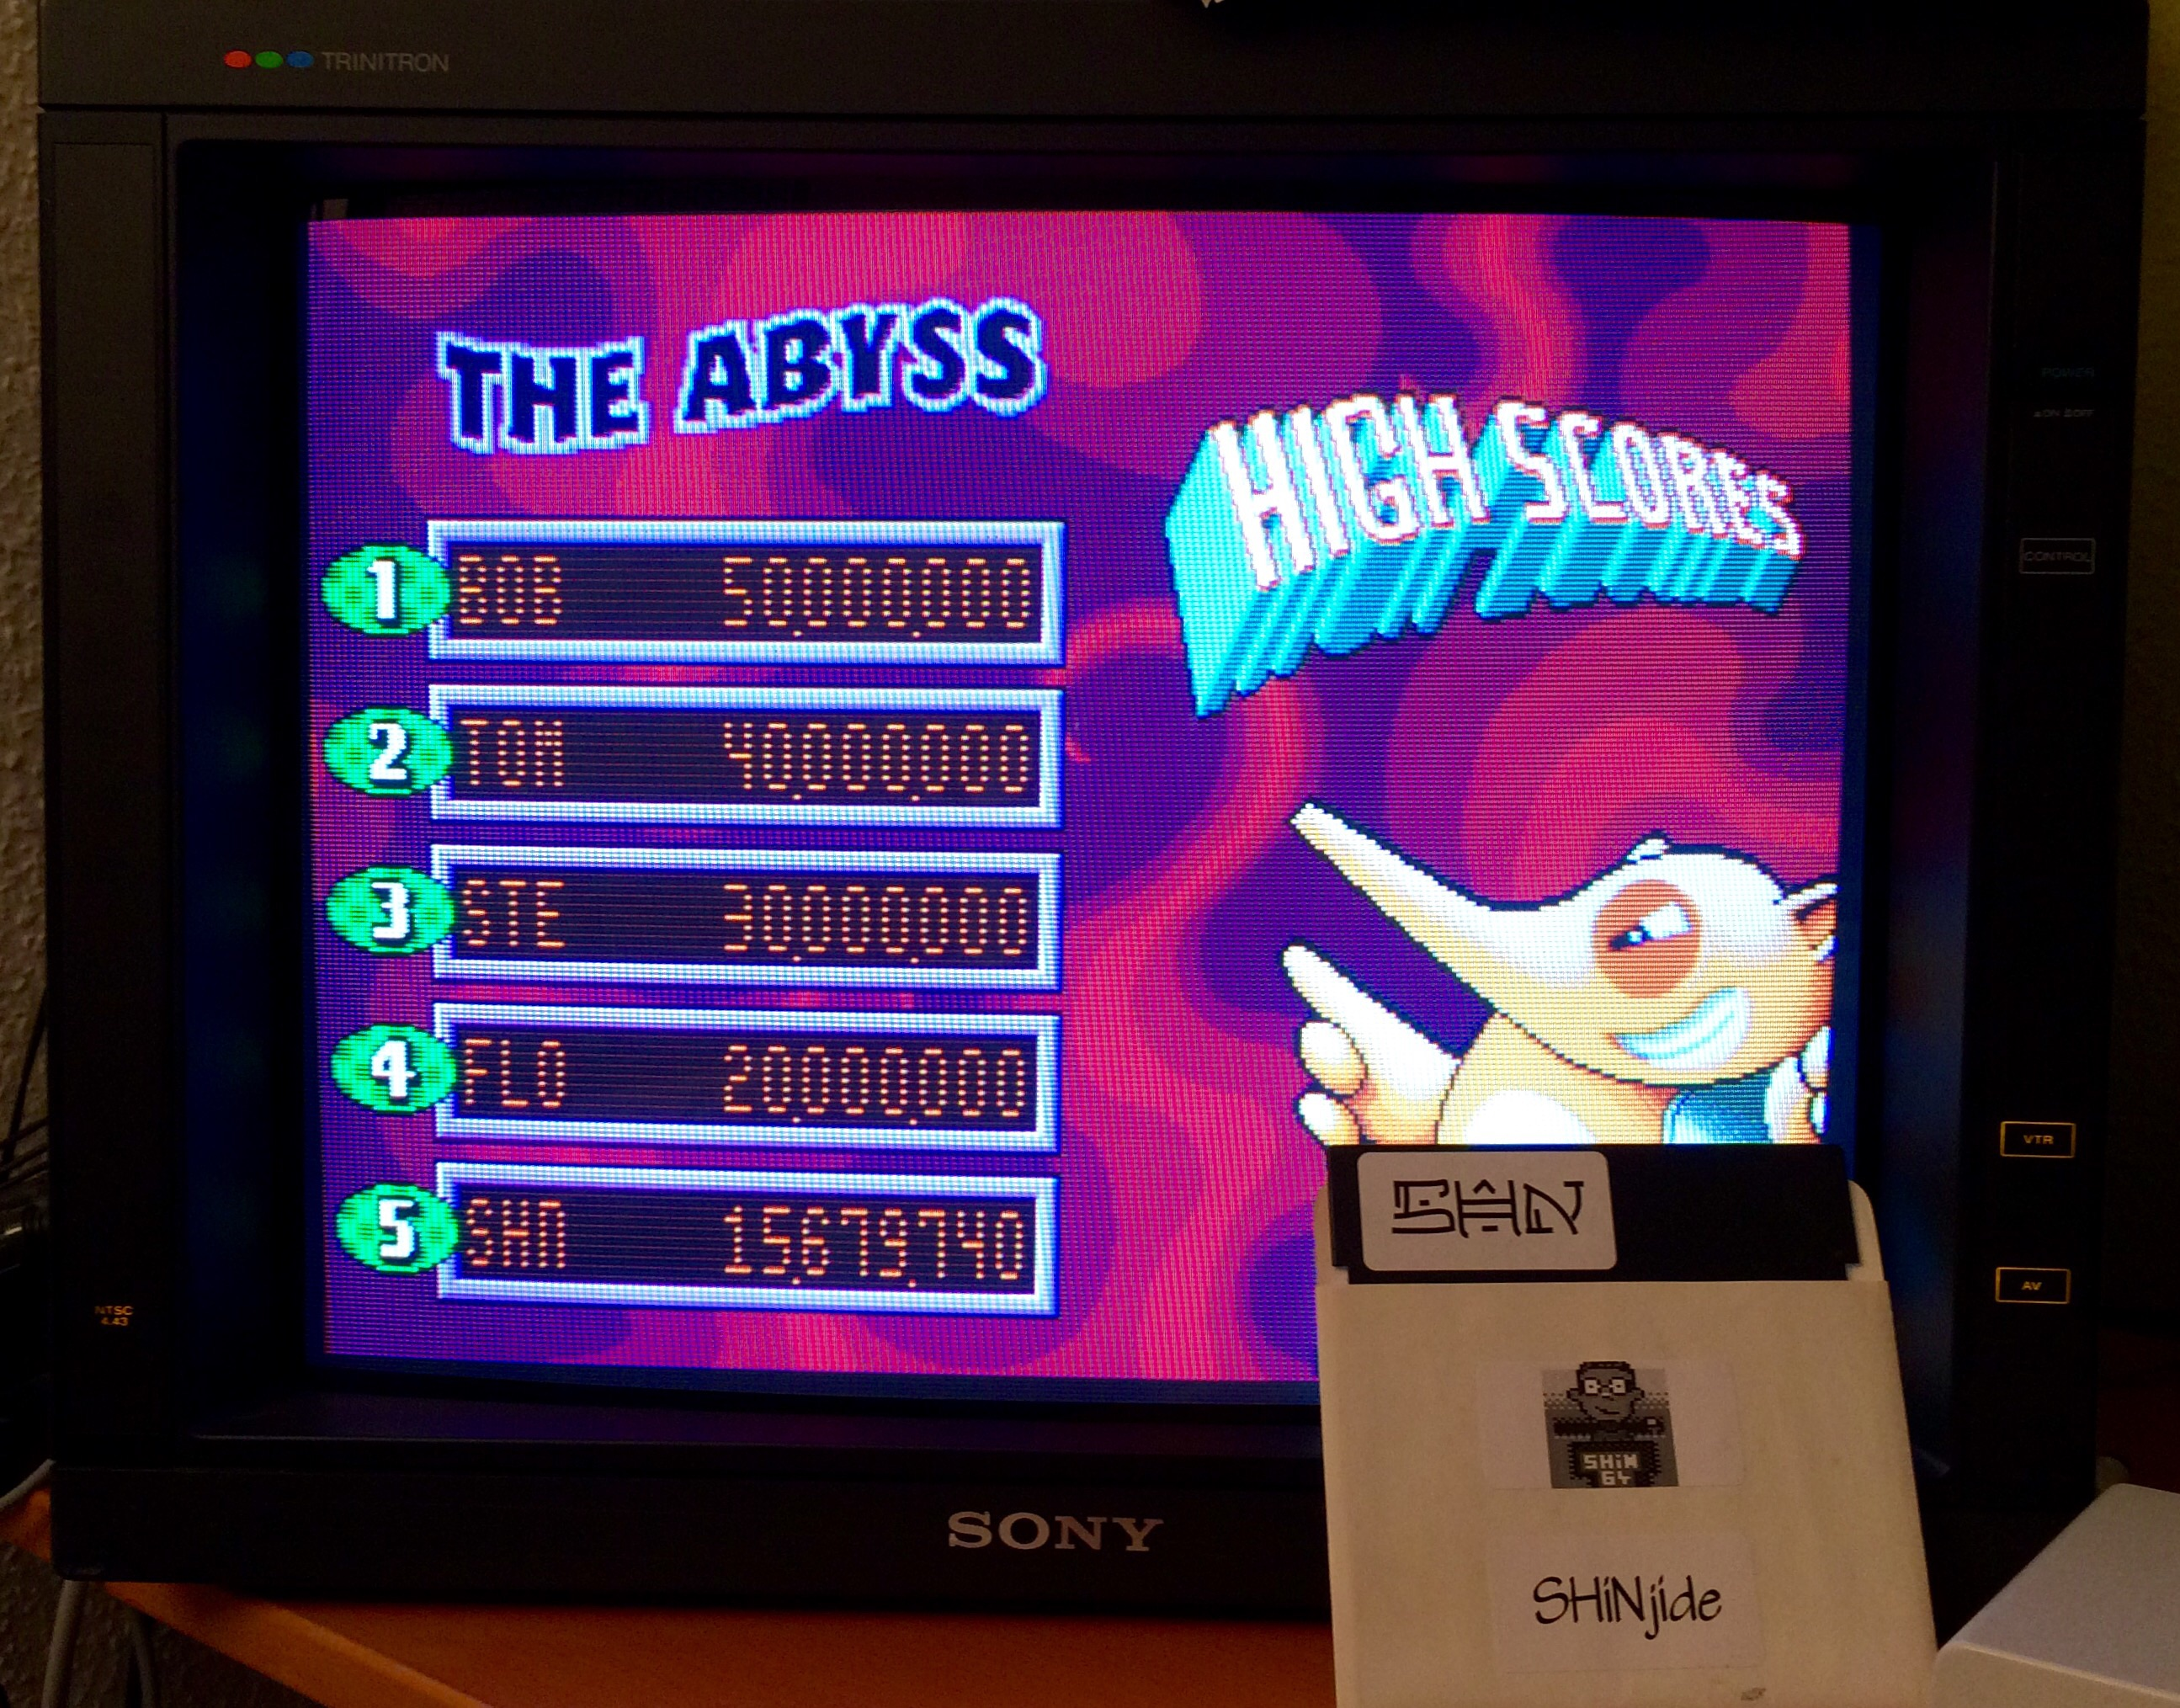 SHiNjide: Psycho Pinball: The Abyss [3 Balls/Normal/Game Speed: Normal] (Sega Genesis / MegaDrive Emulated) 15,679,740 points on 2015-01-22 12:37:03